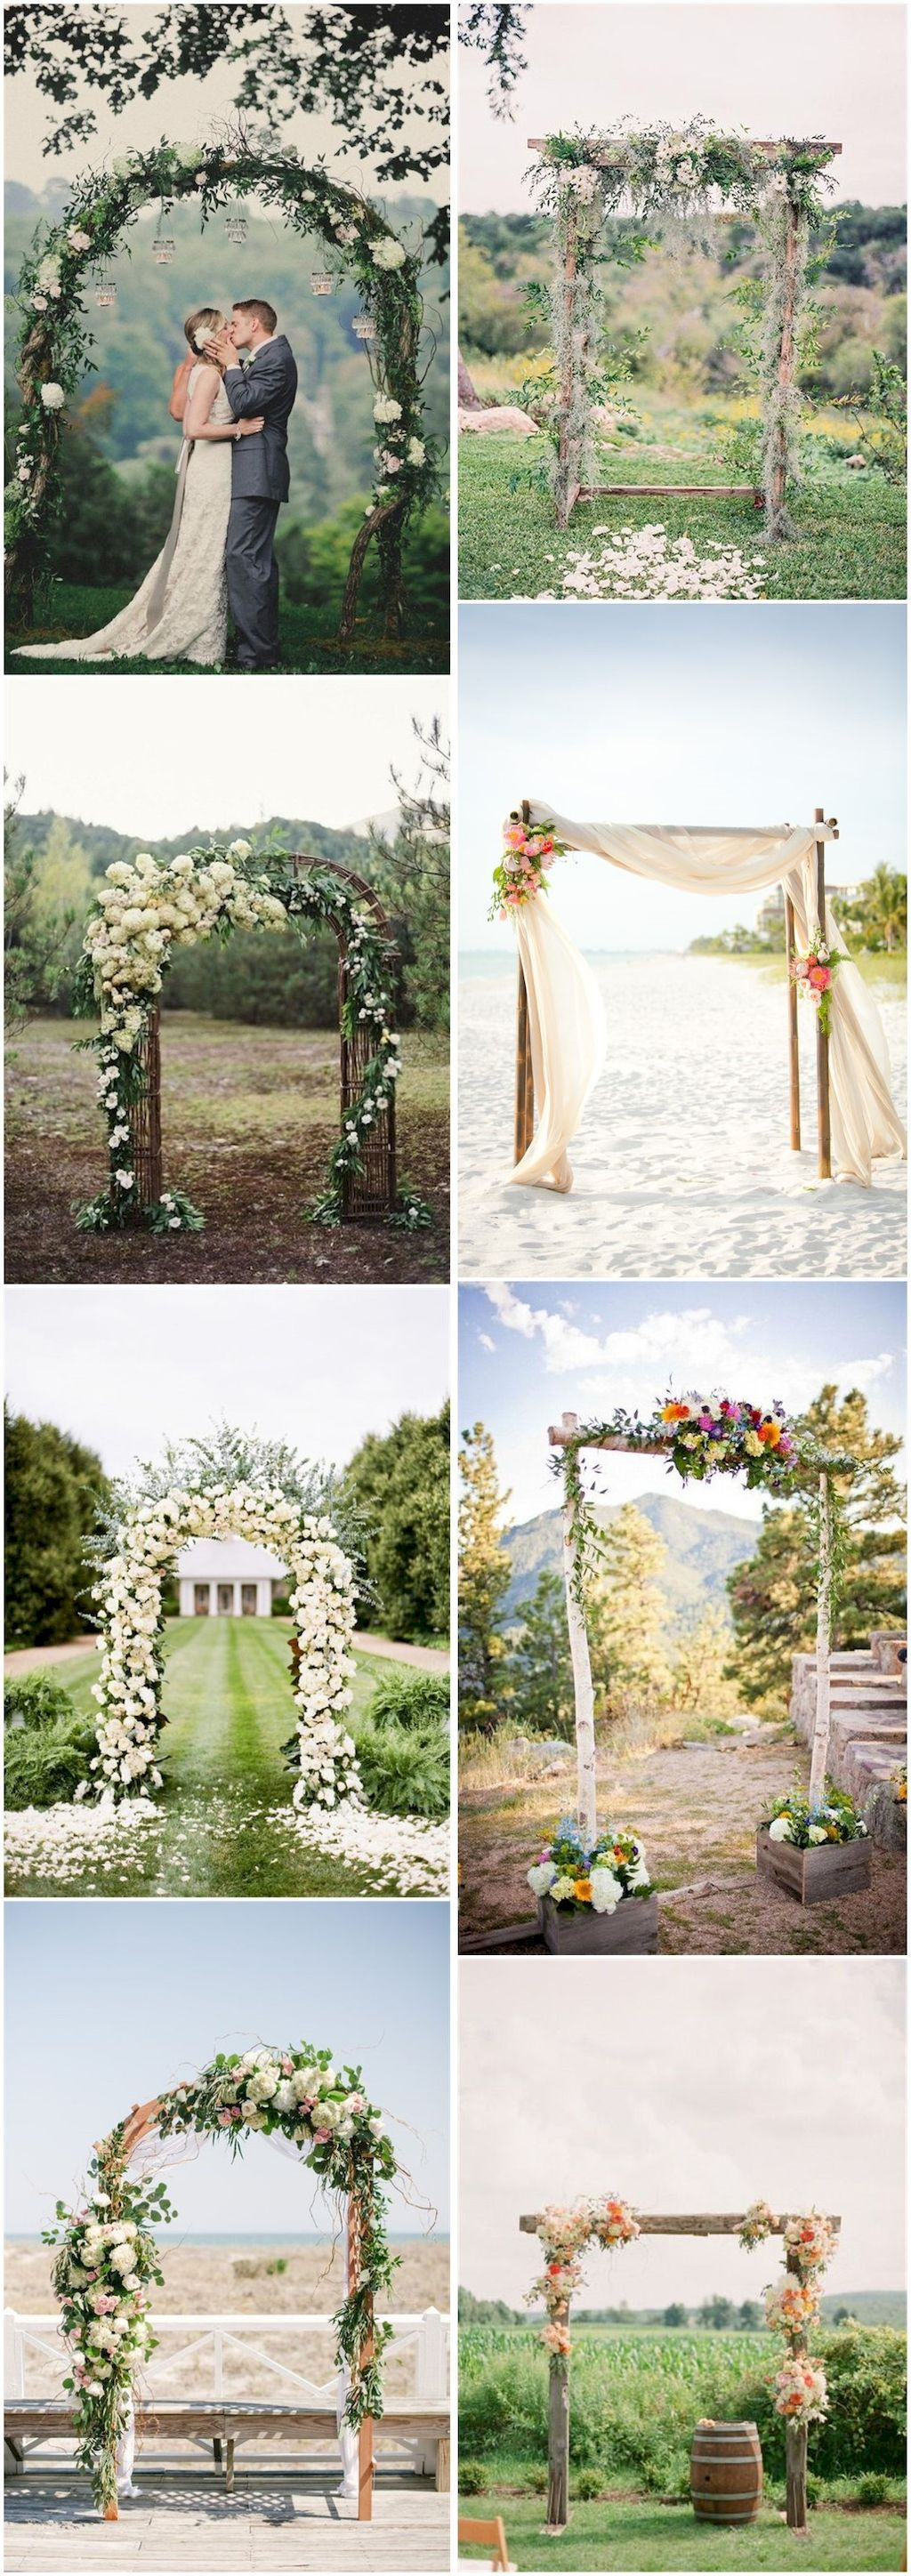 elegant outdoor wedding decor ideas on a budget budgeting